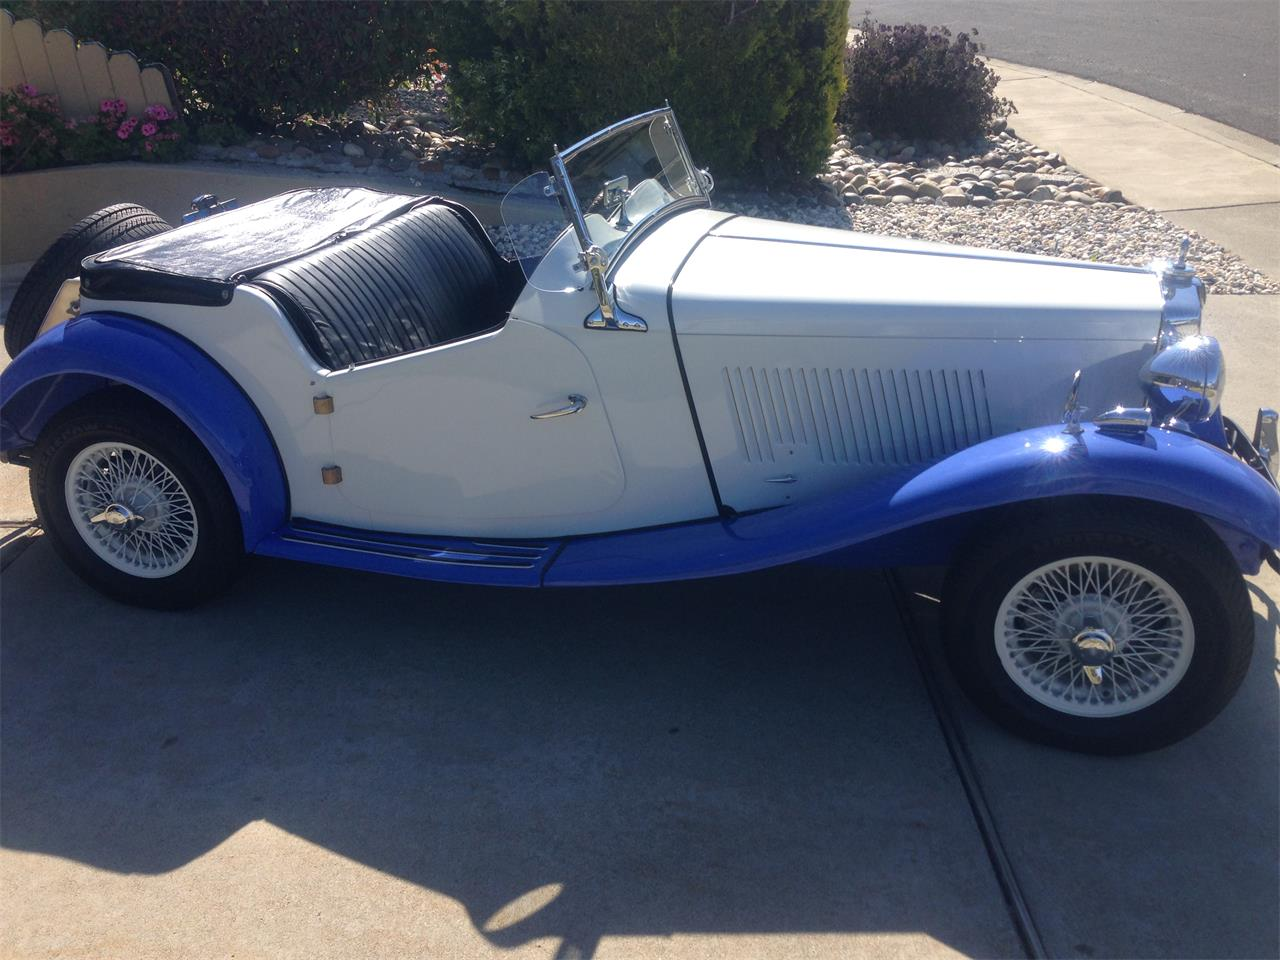 Large Picture of 1952 MG TD located in California - $18,888.00 Offered by a Private Seller - FTY3